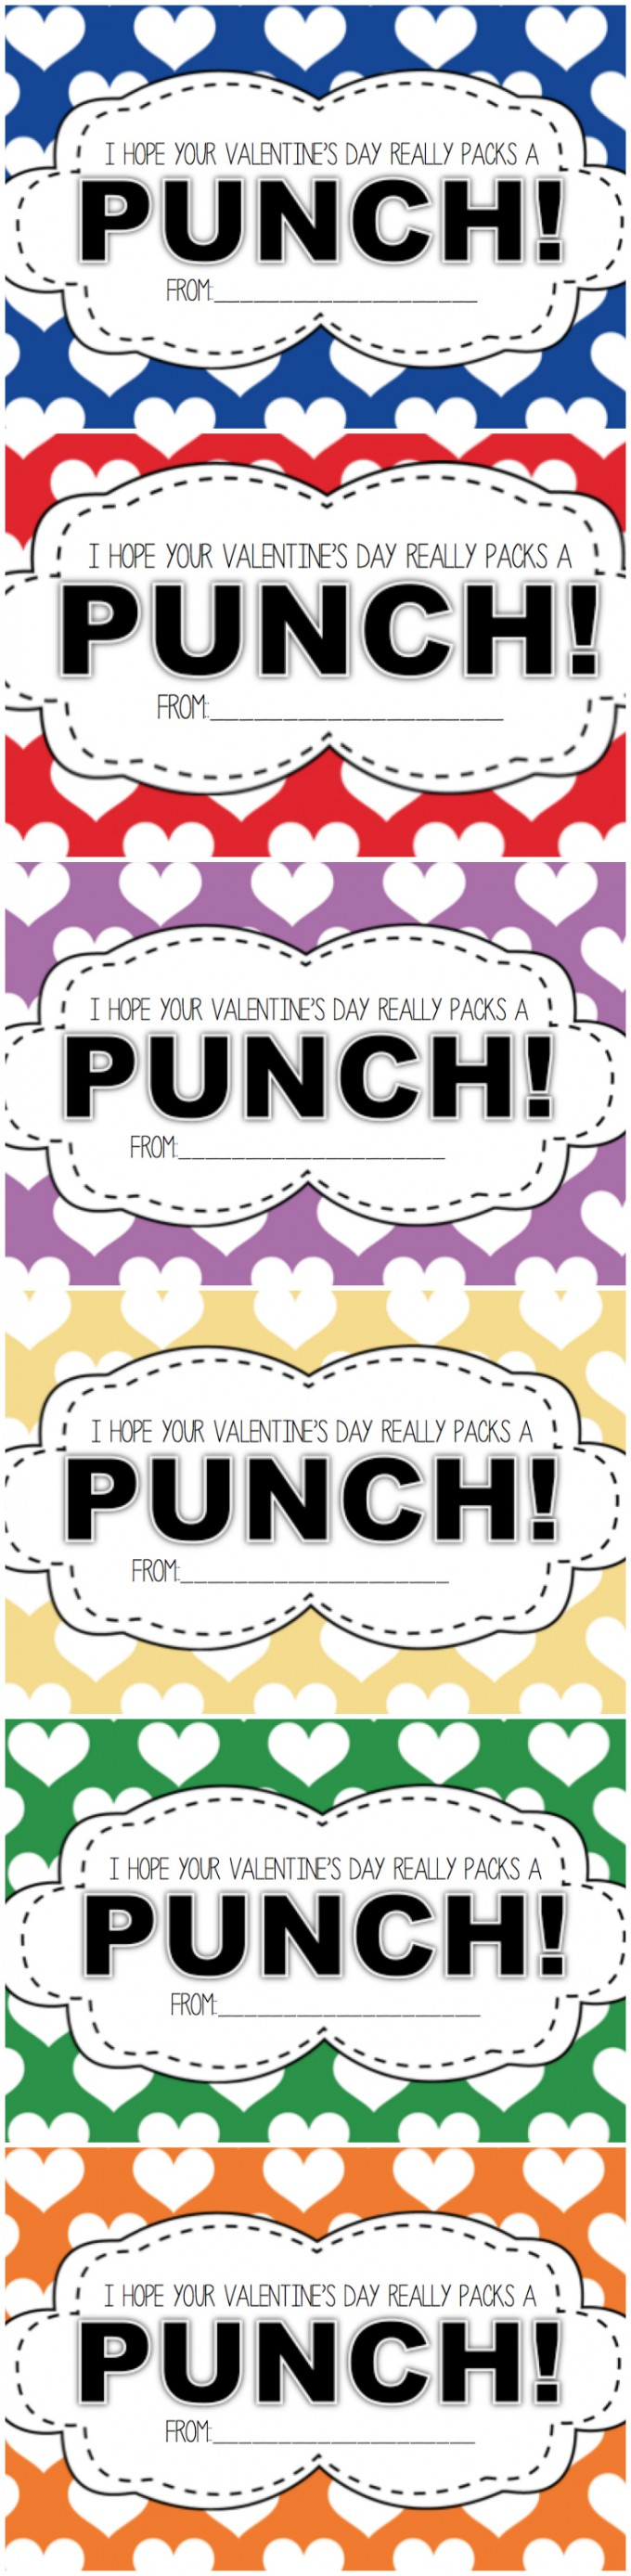 I Hope Your Valentineu0027s Day Really Packs A Punch